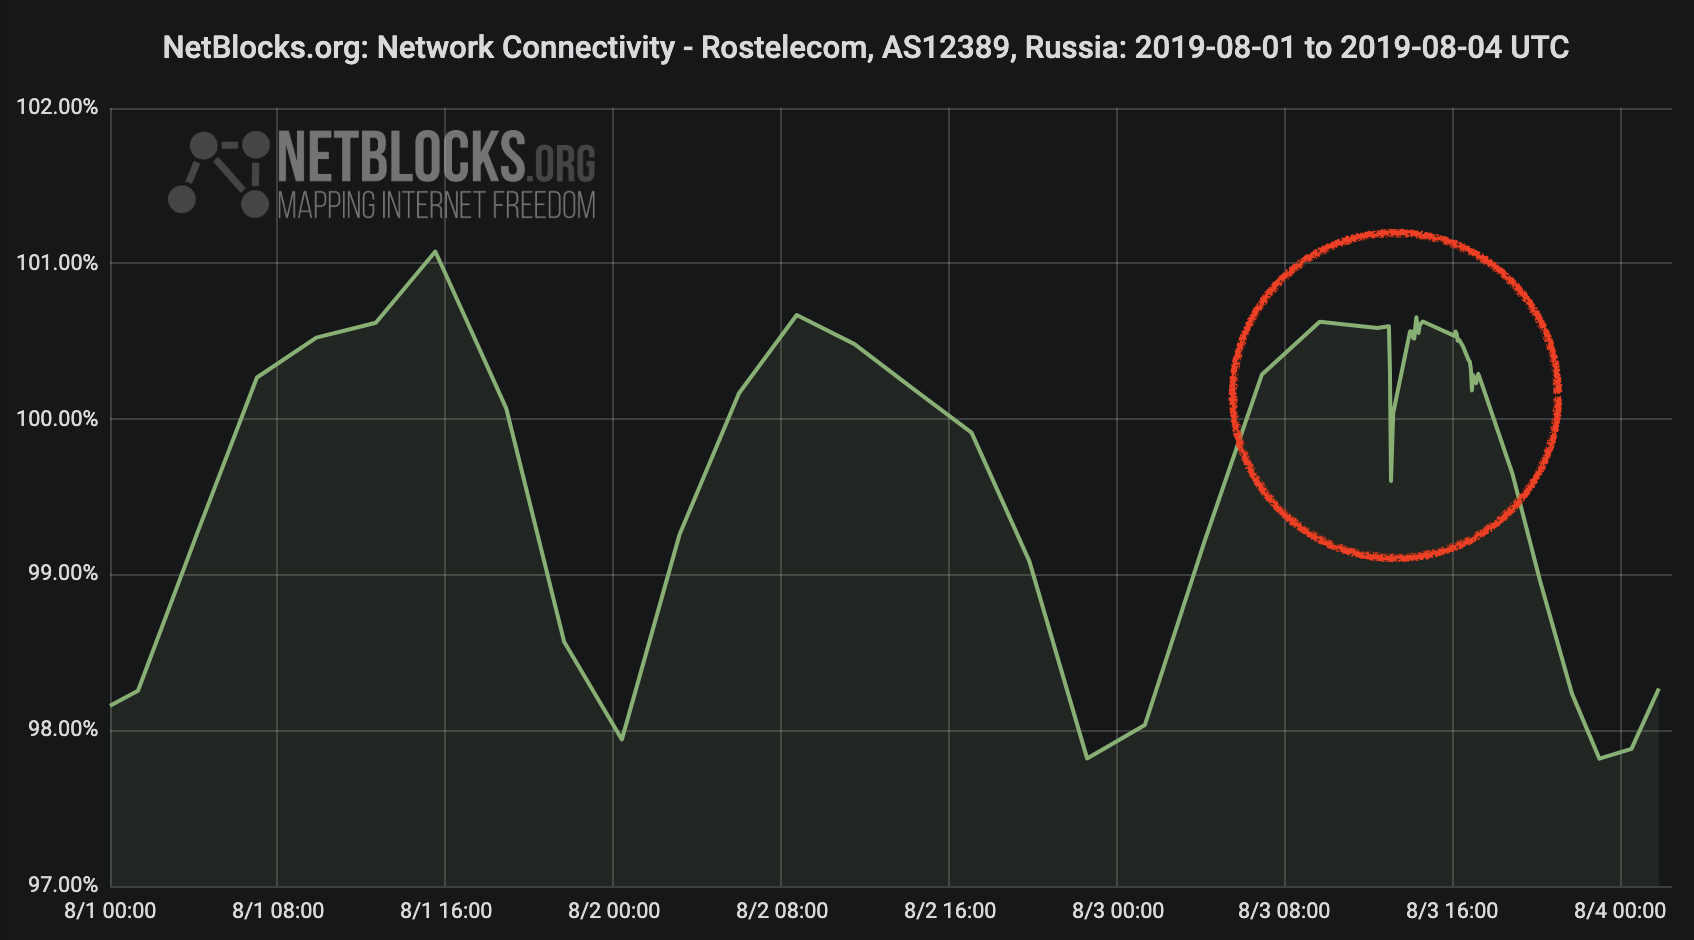 Evidence of internet disruptions in Russia during Moscow